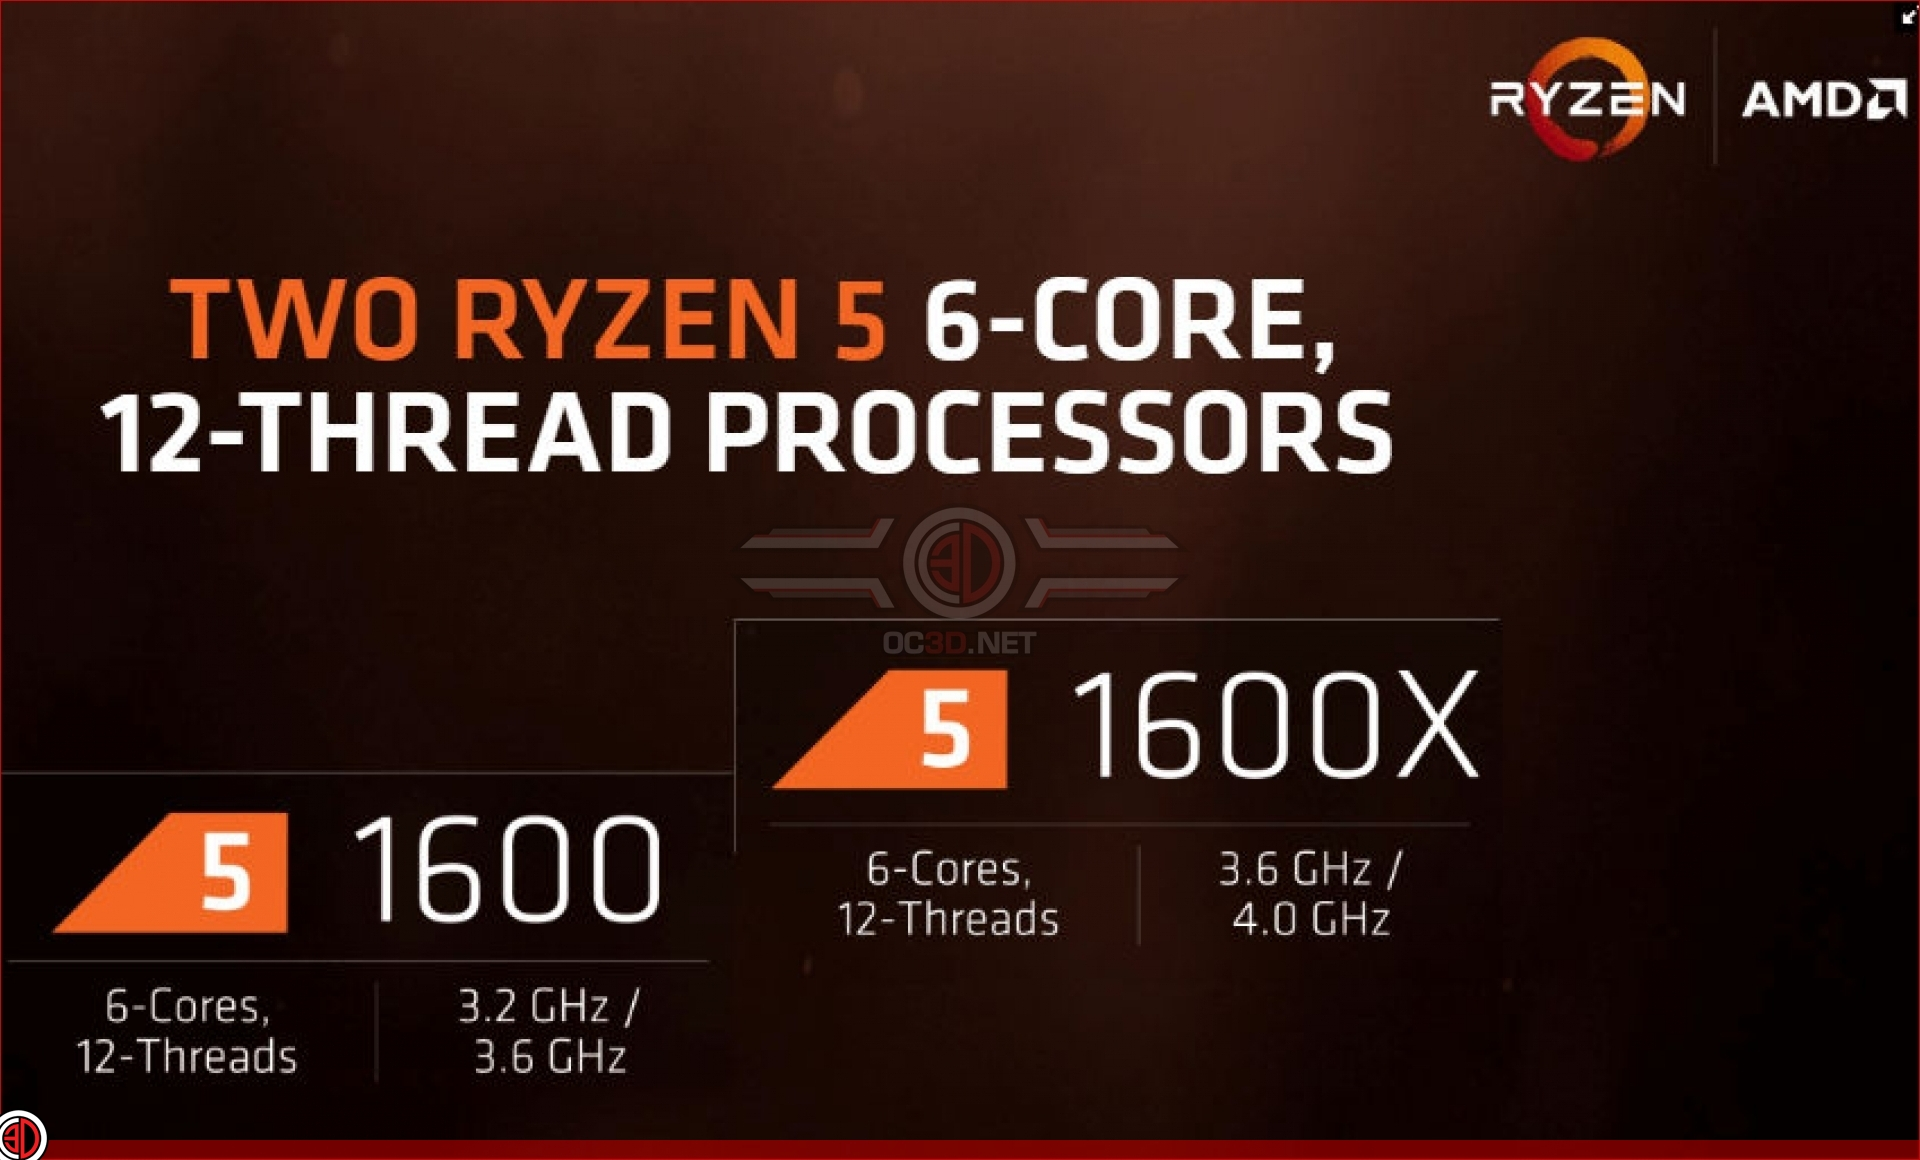 Amds Ryzen 5 Series Of Cpus Will Release On April 11th Oc3d News Amd R5 1500x